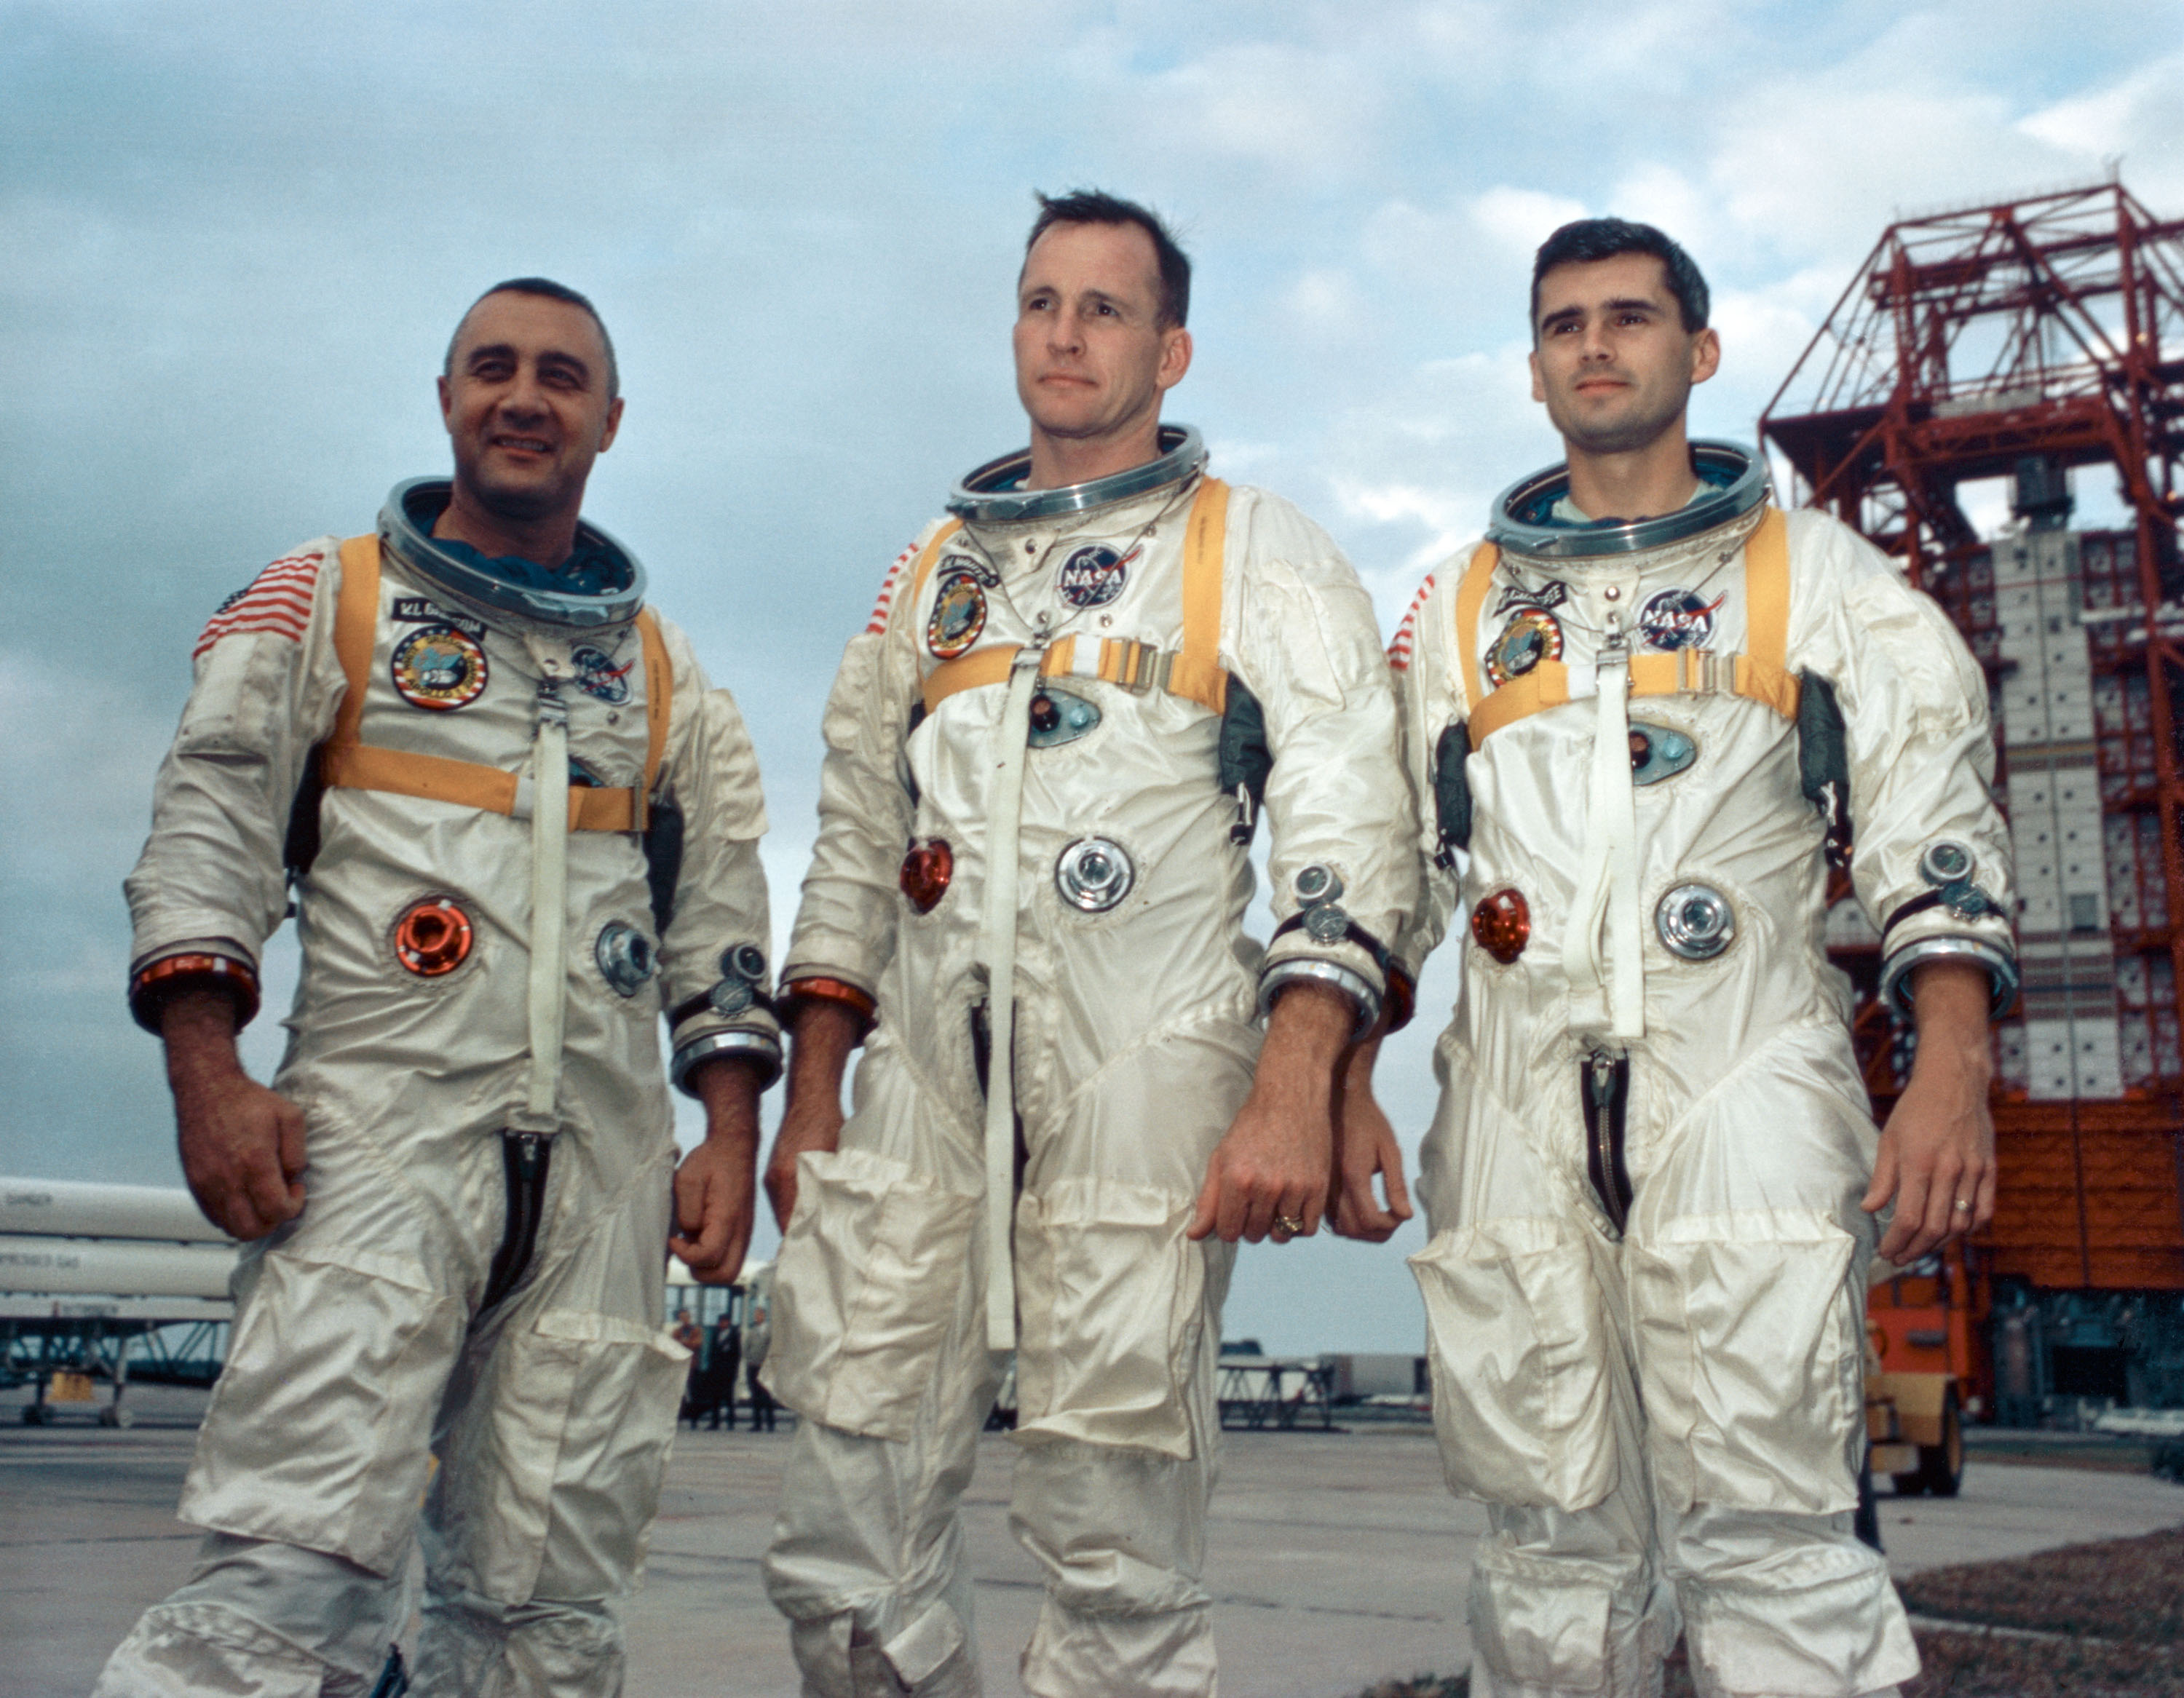 apollo space crews - photo #16